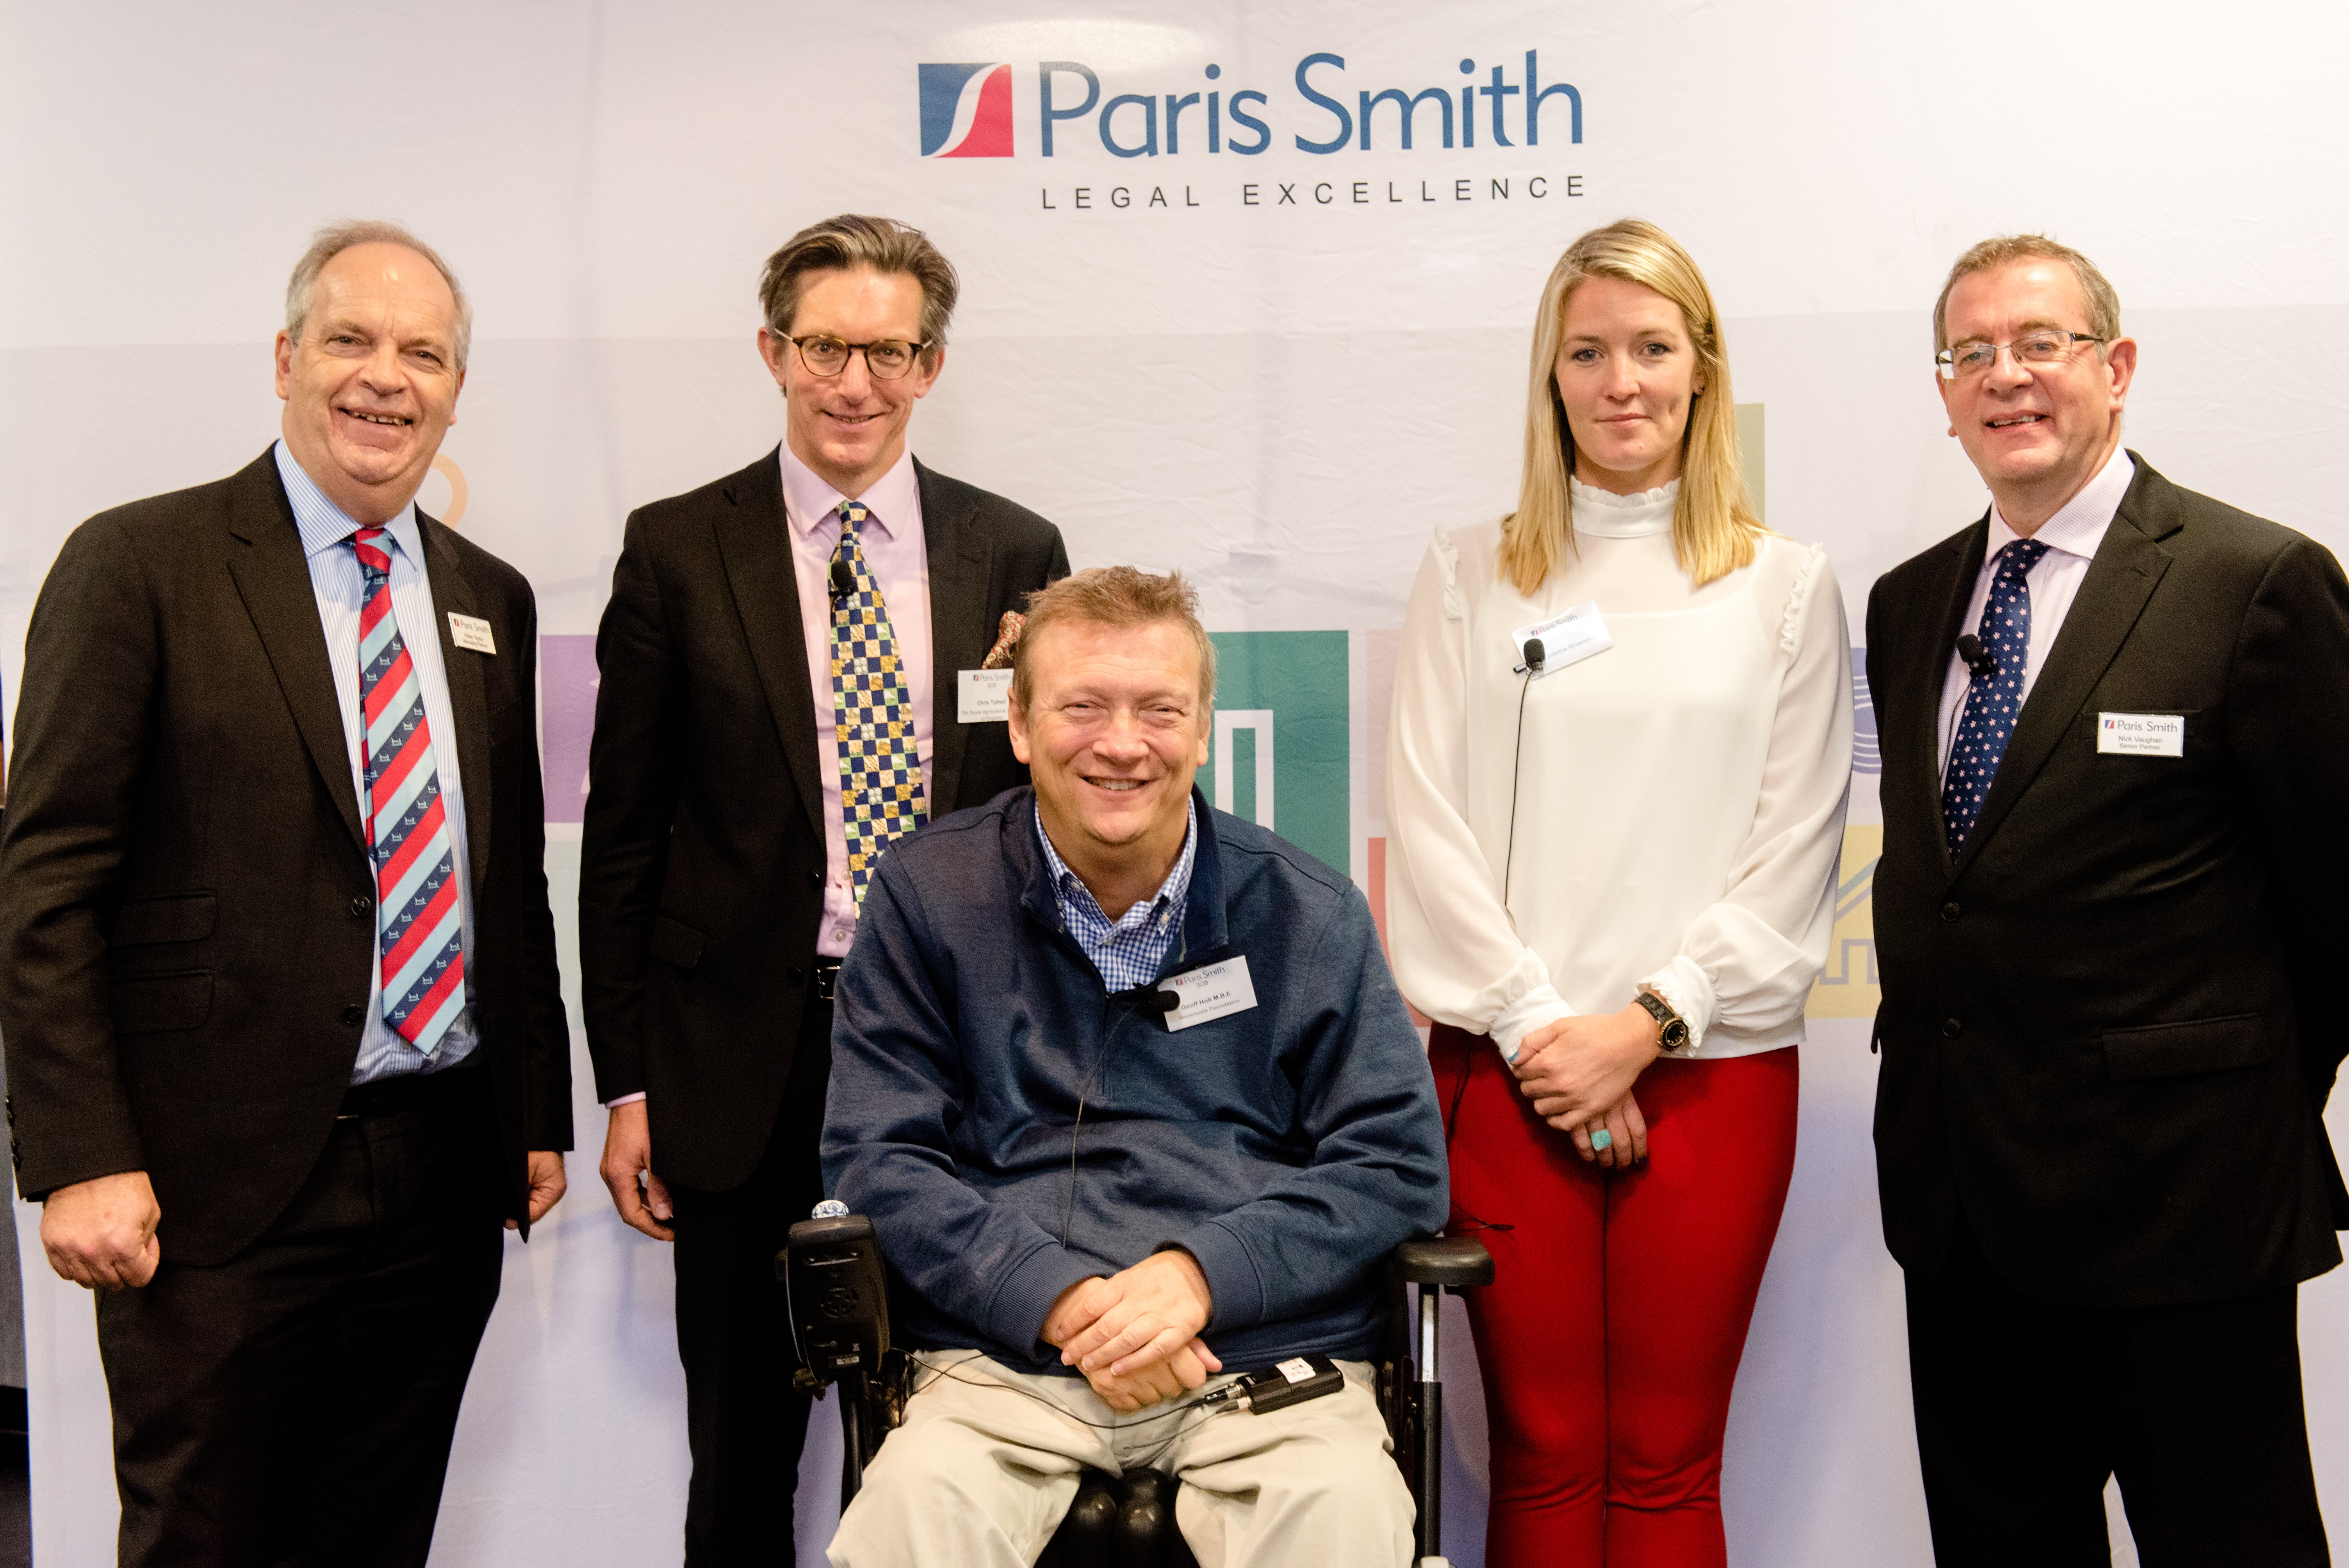 guest speakers charity conference image